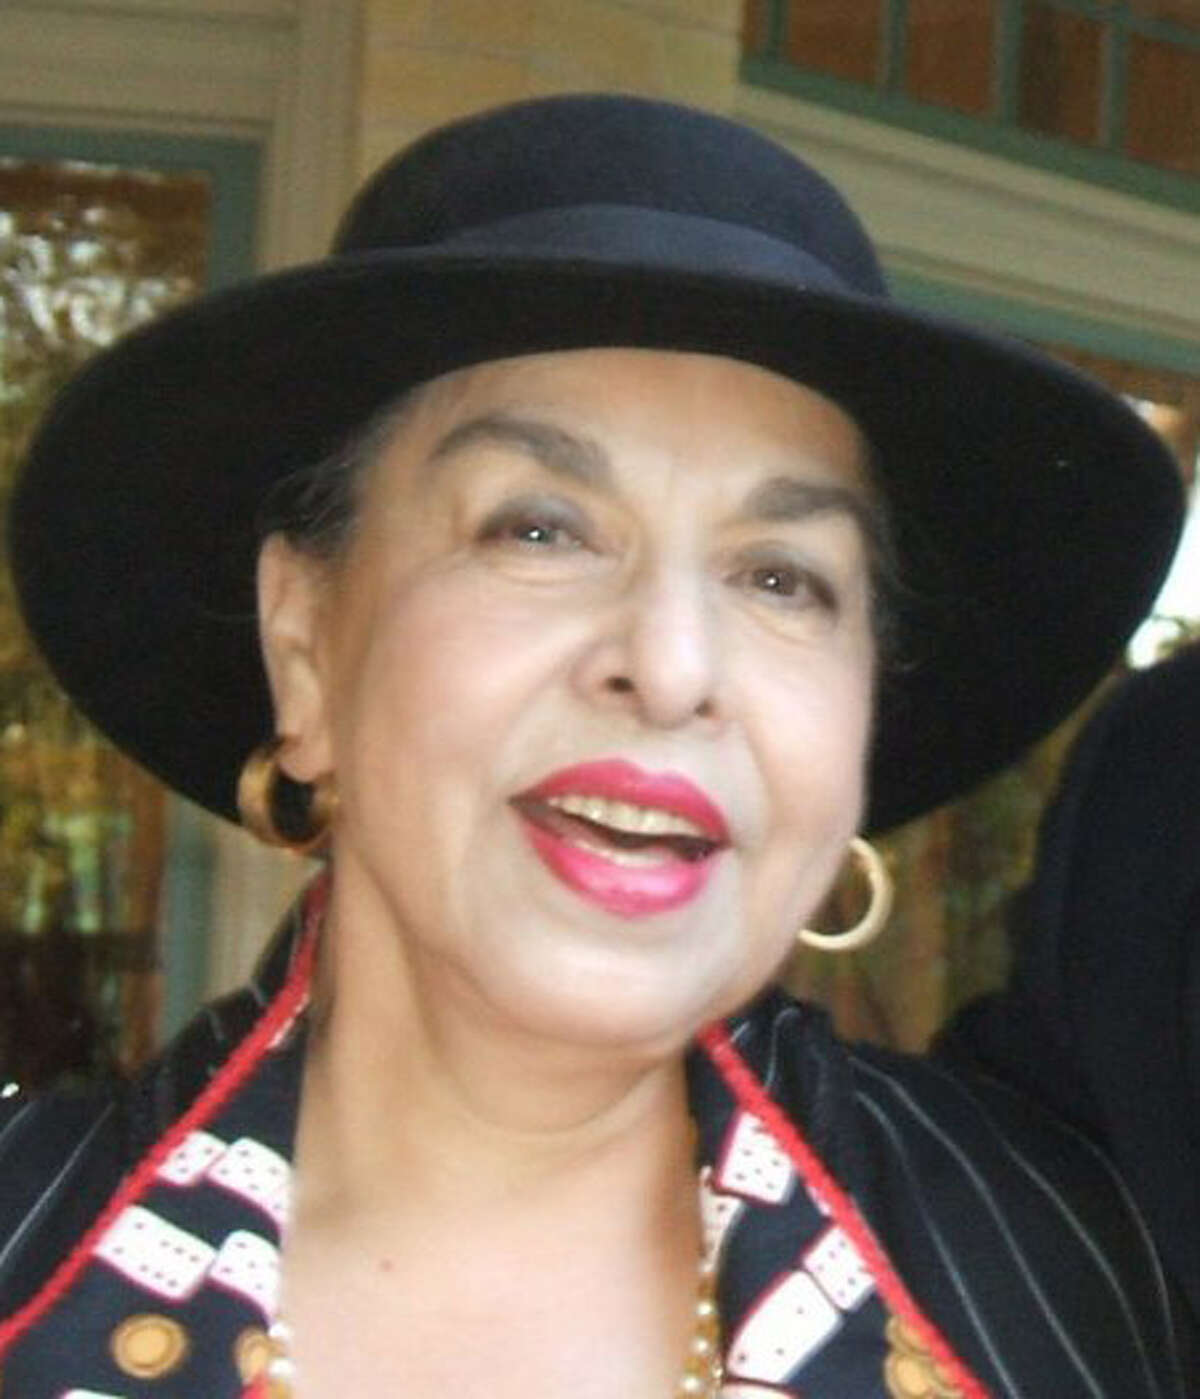 Joyce Peters, former chair of the Bexar County Democratic Party, at a fundraiser on Oct. 4, 2006